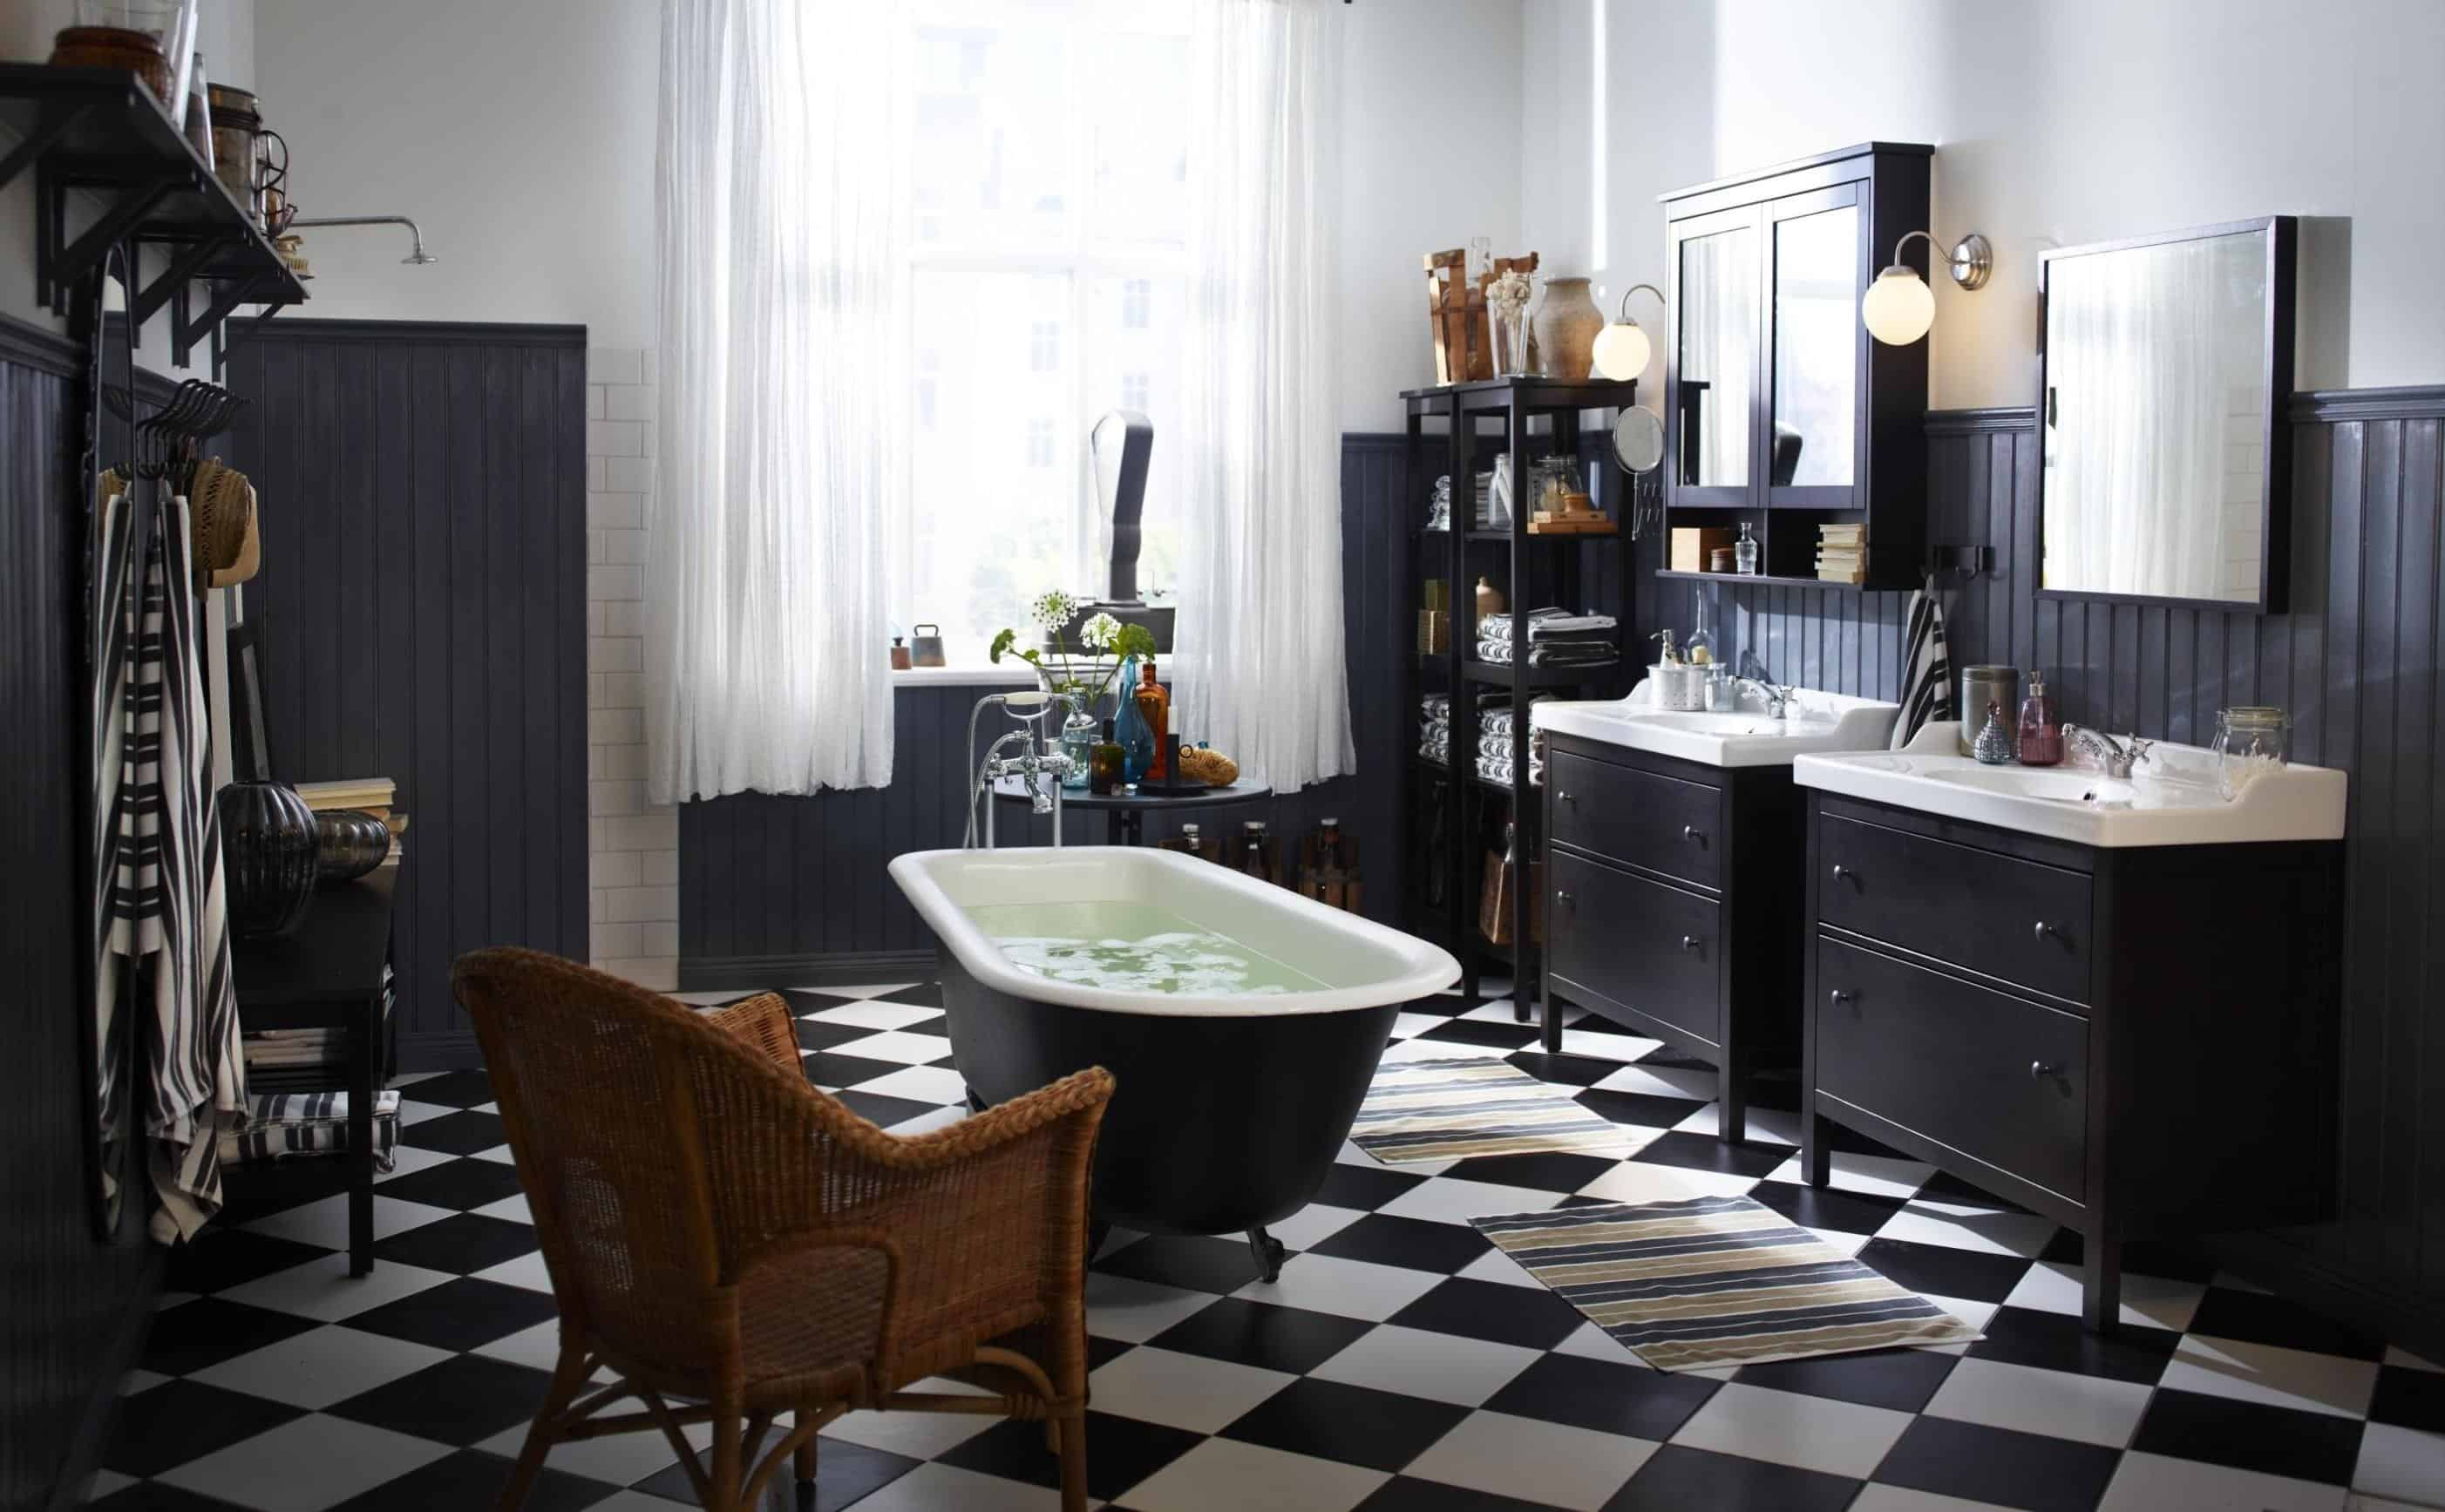 Simple remodel chess floors can change the game add a chess floor to your bathroom dailygadgetfo Image collections